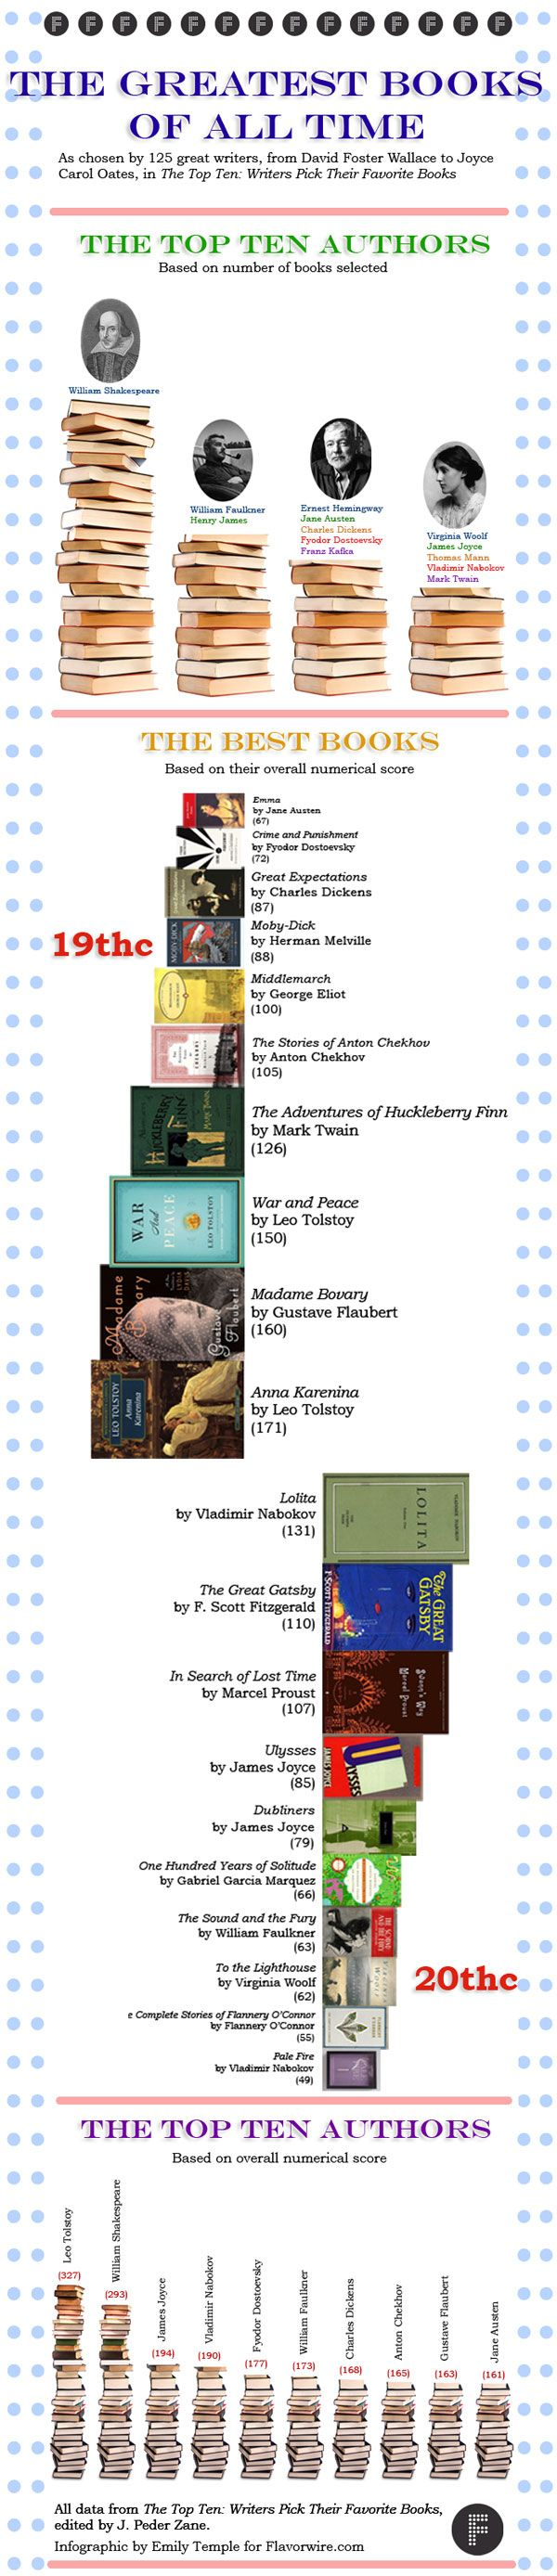 The greatest books of all time, as voted by 125 famous authors